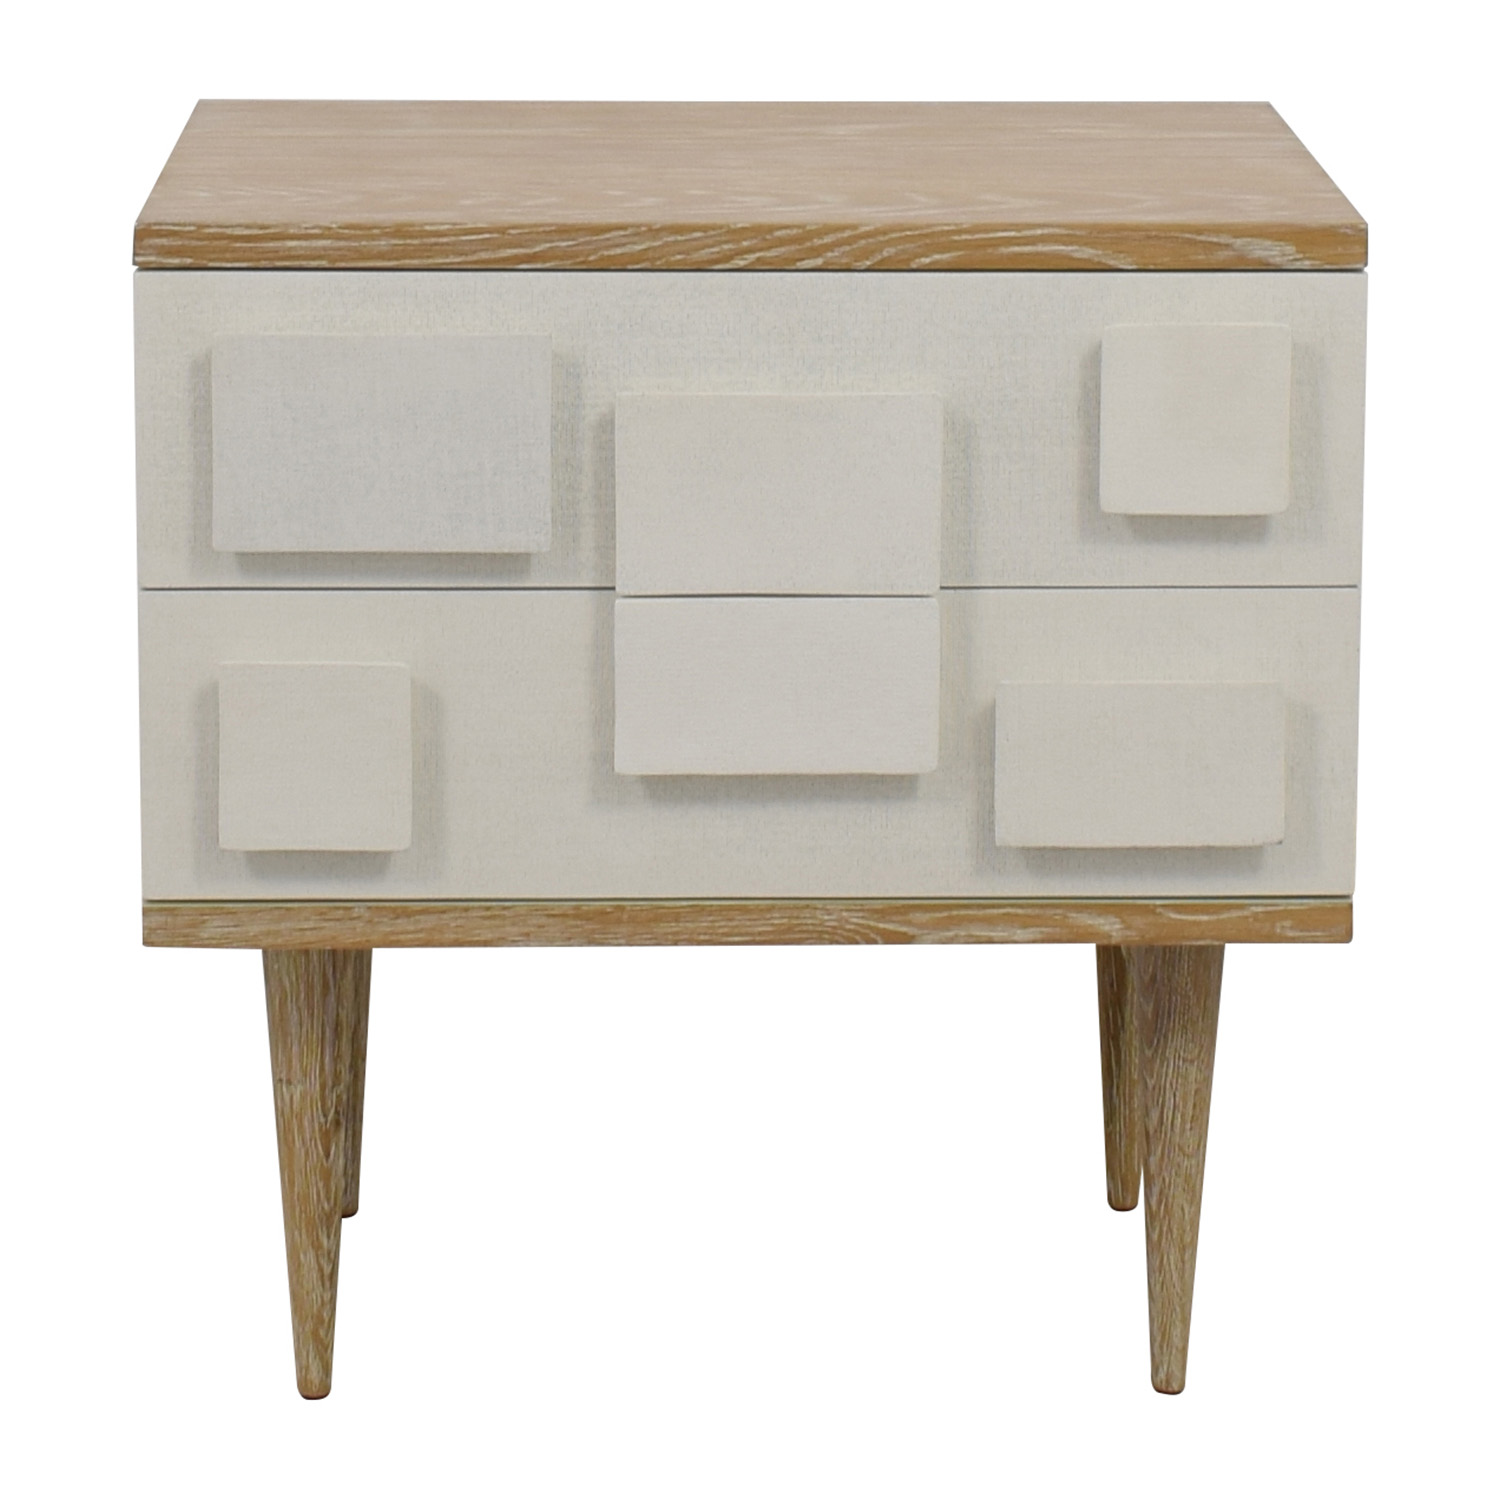 Bungalow 5 Bungalow 5 Ponti Two-Drawer Side Table coupon